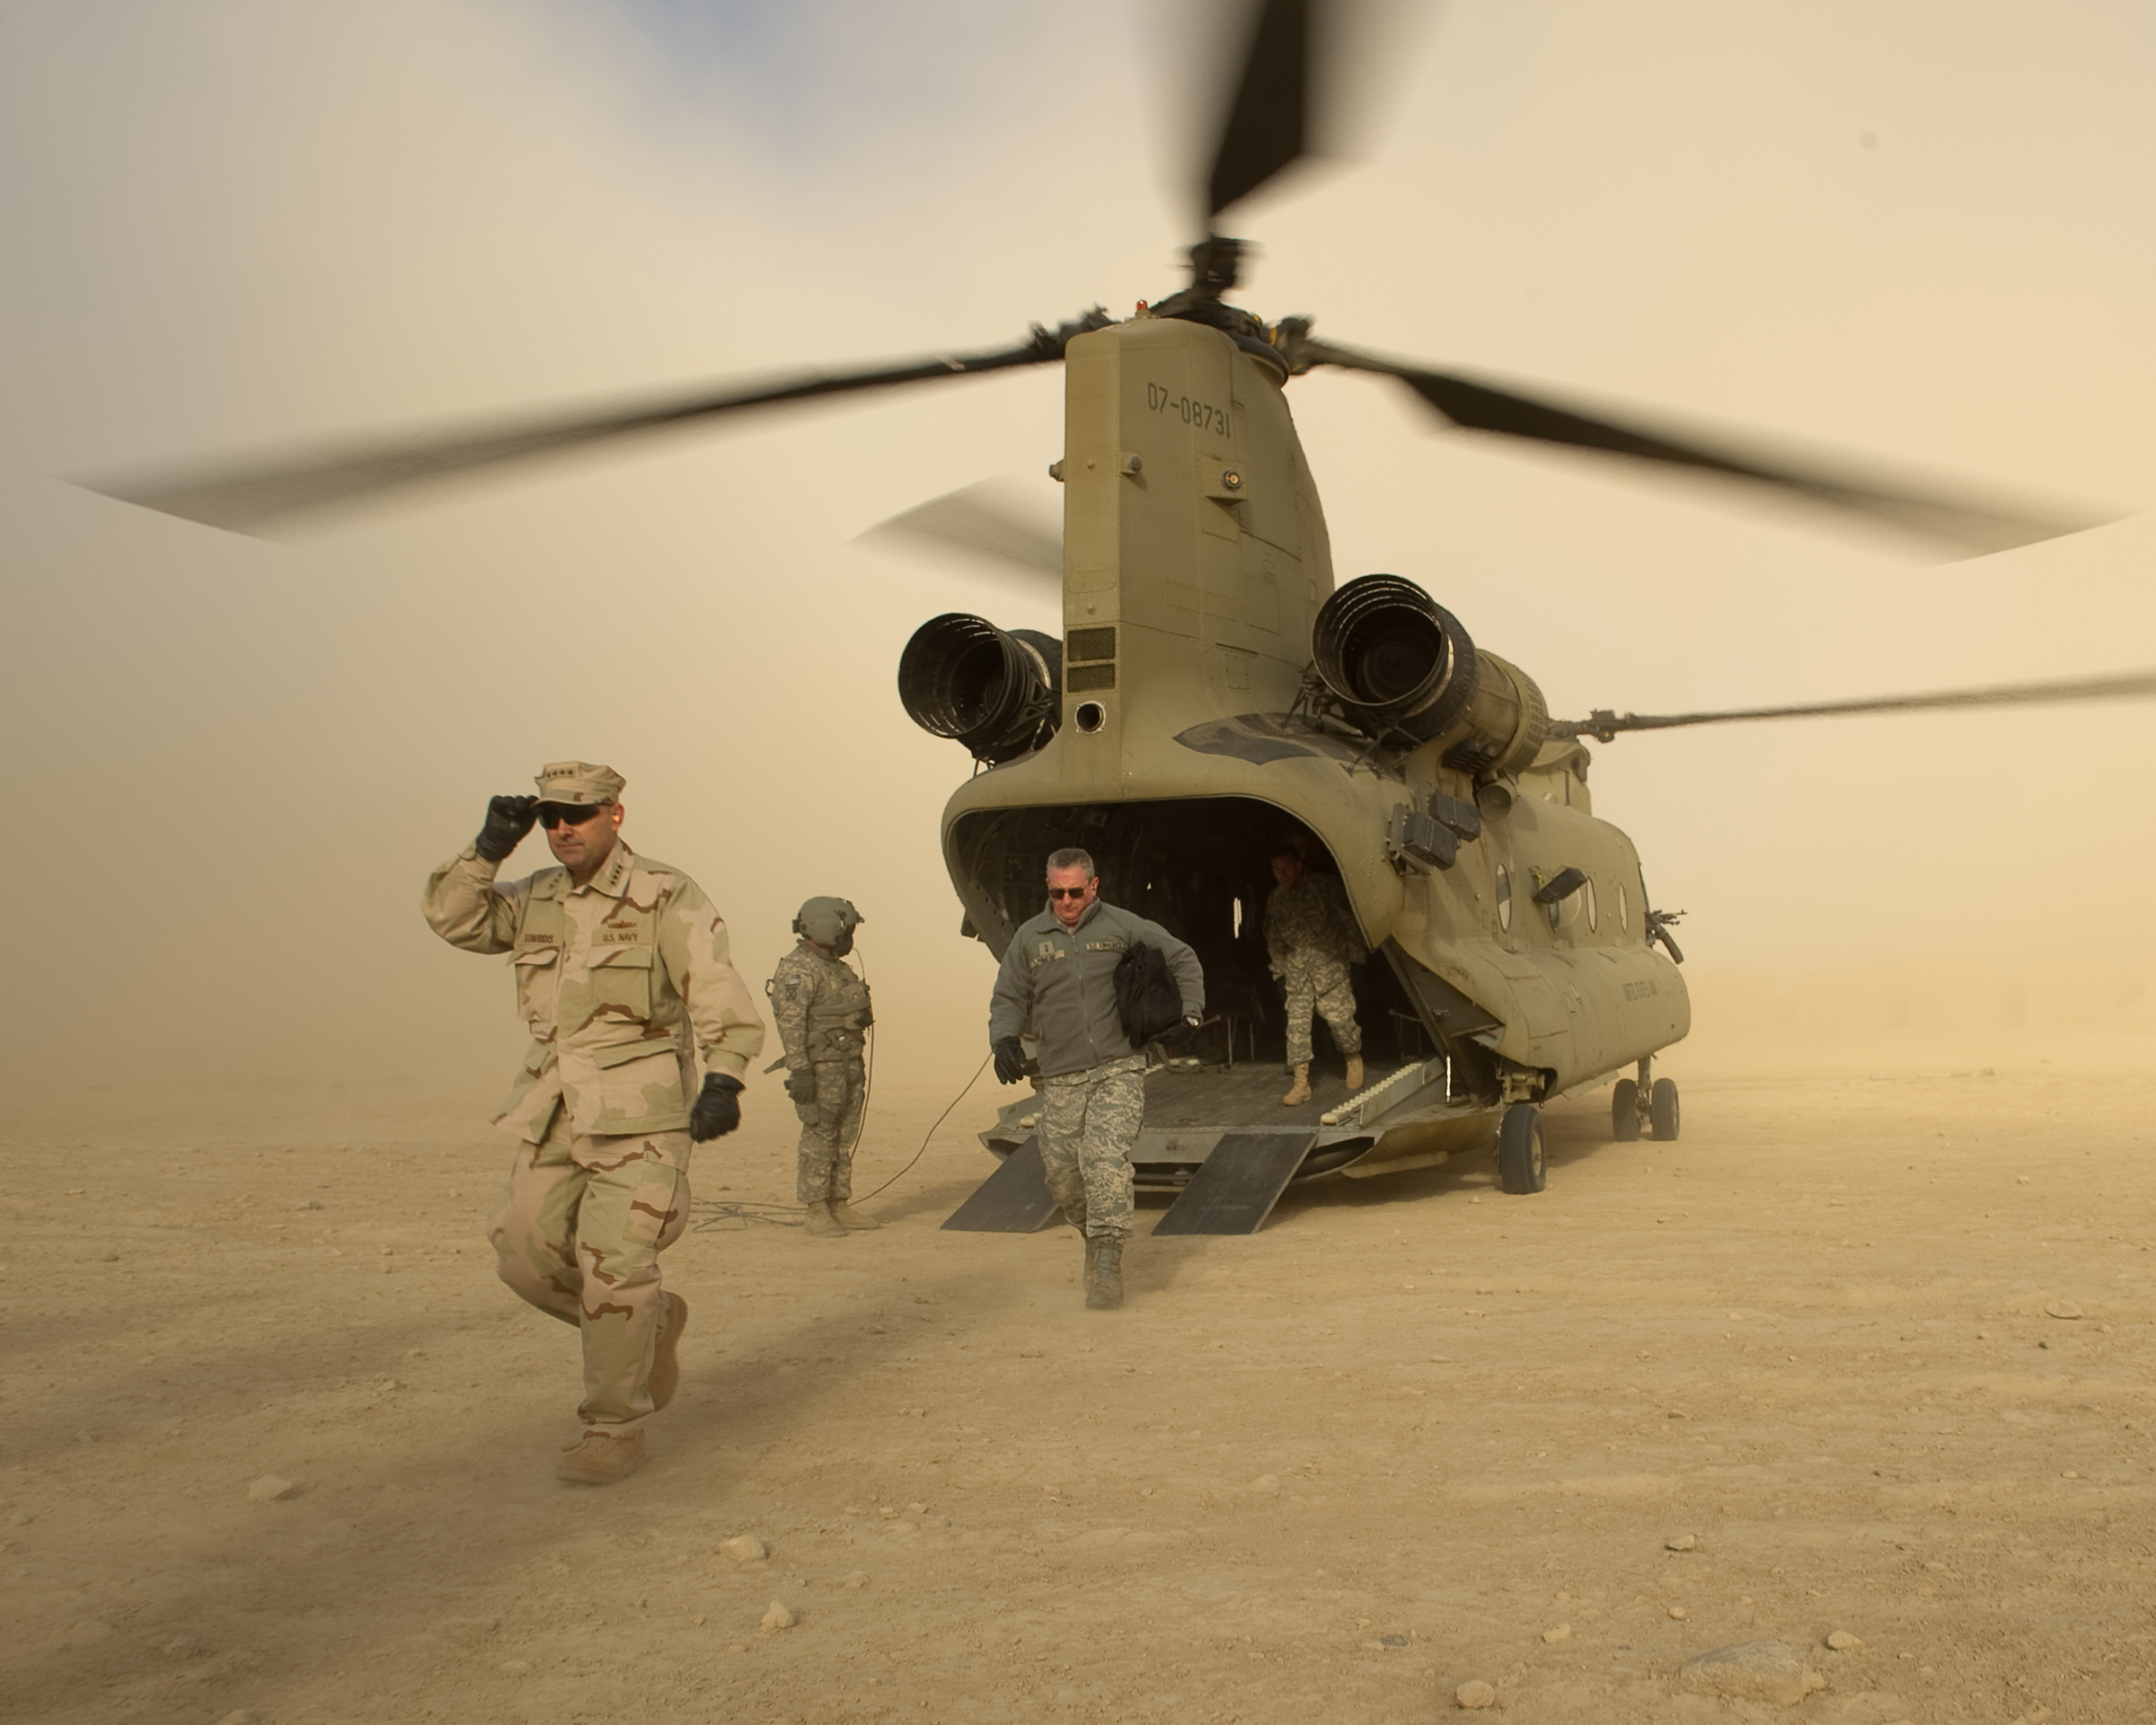 While Supreme Allied Commander of NATO, Admiral Stavridis dismounts a helicopter in Afghanistan outside of Khandahar in 2010.